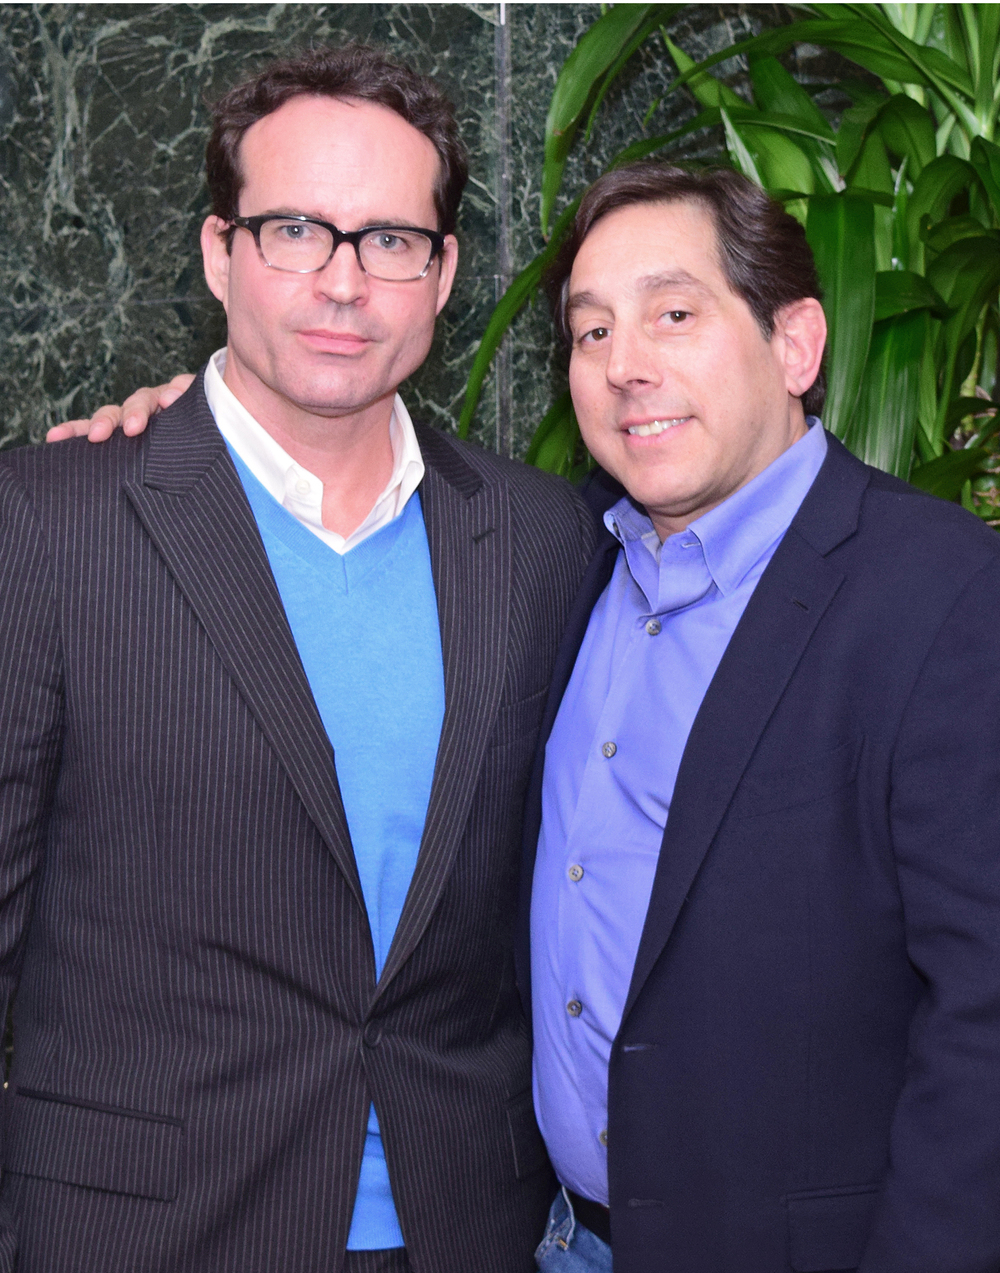 Jason Patric, founder of Stand Up for Gus, and Warren Lichtenstein, founder of Steel Partners Foundation, co-hosted a Think Tank on Parental Alienation on Feb. 5, 2016.